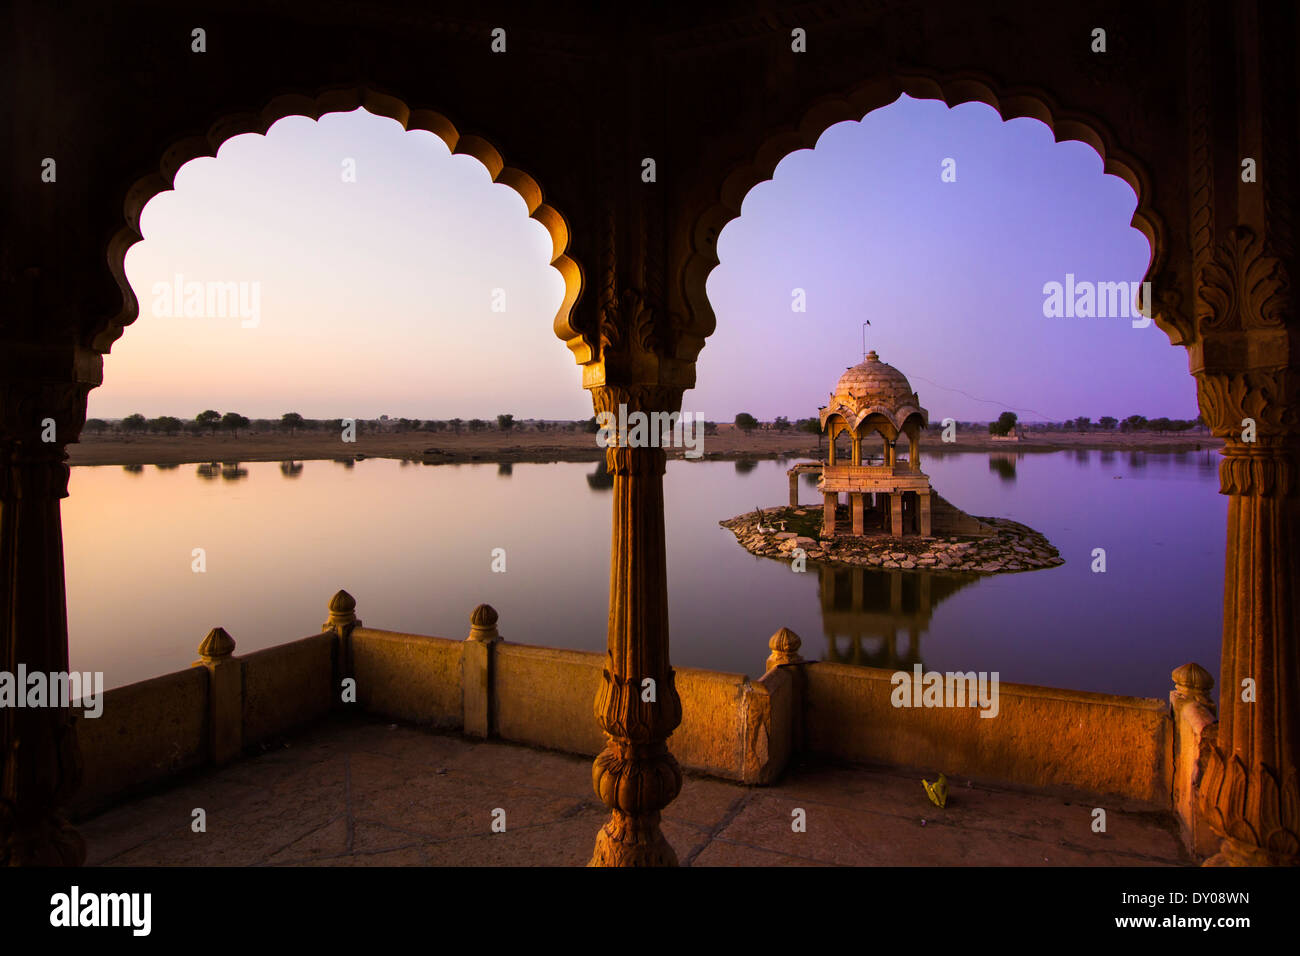 Gadi Sagar (Gadisar) Lake is one of the most important tourist attractions in Jaisalmer, Rajasthan, North India. - Stock Photo